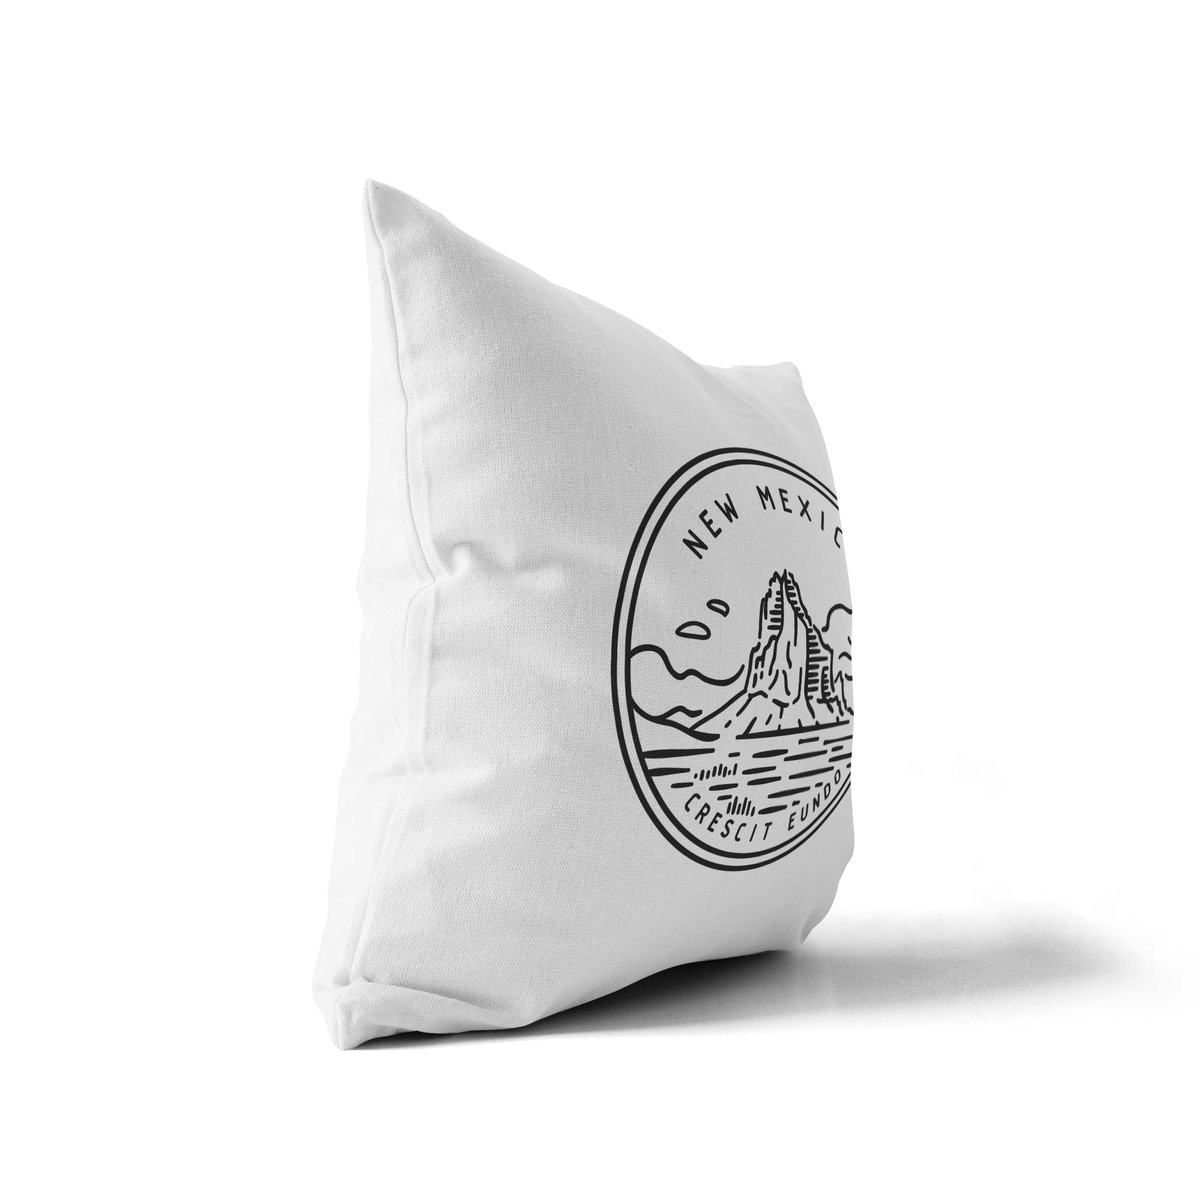 New Mexico State Crest Throw Pillow